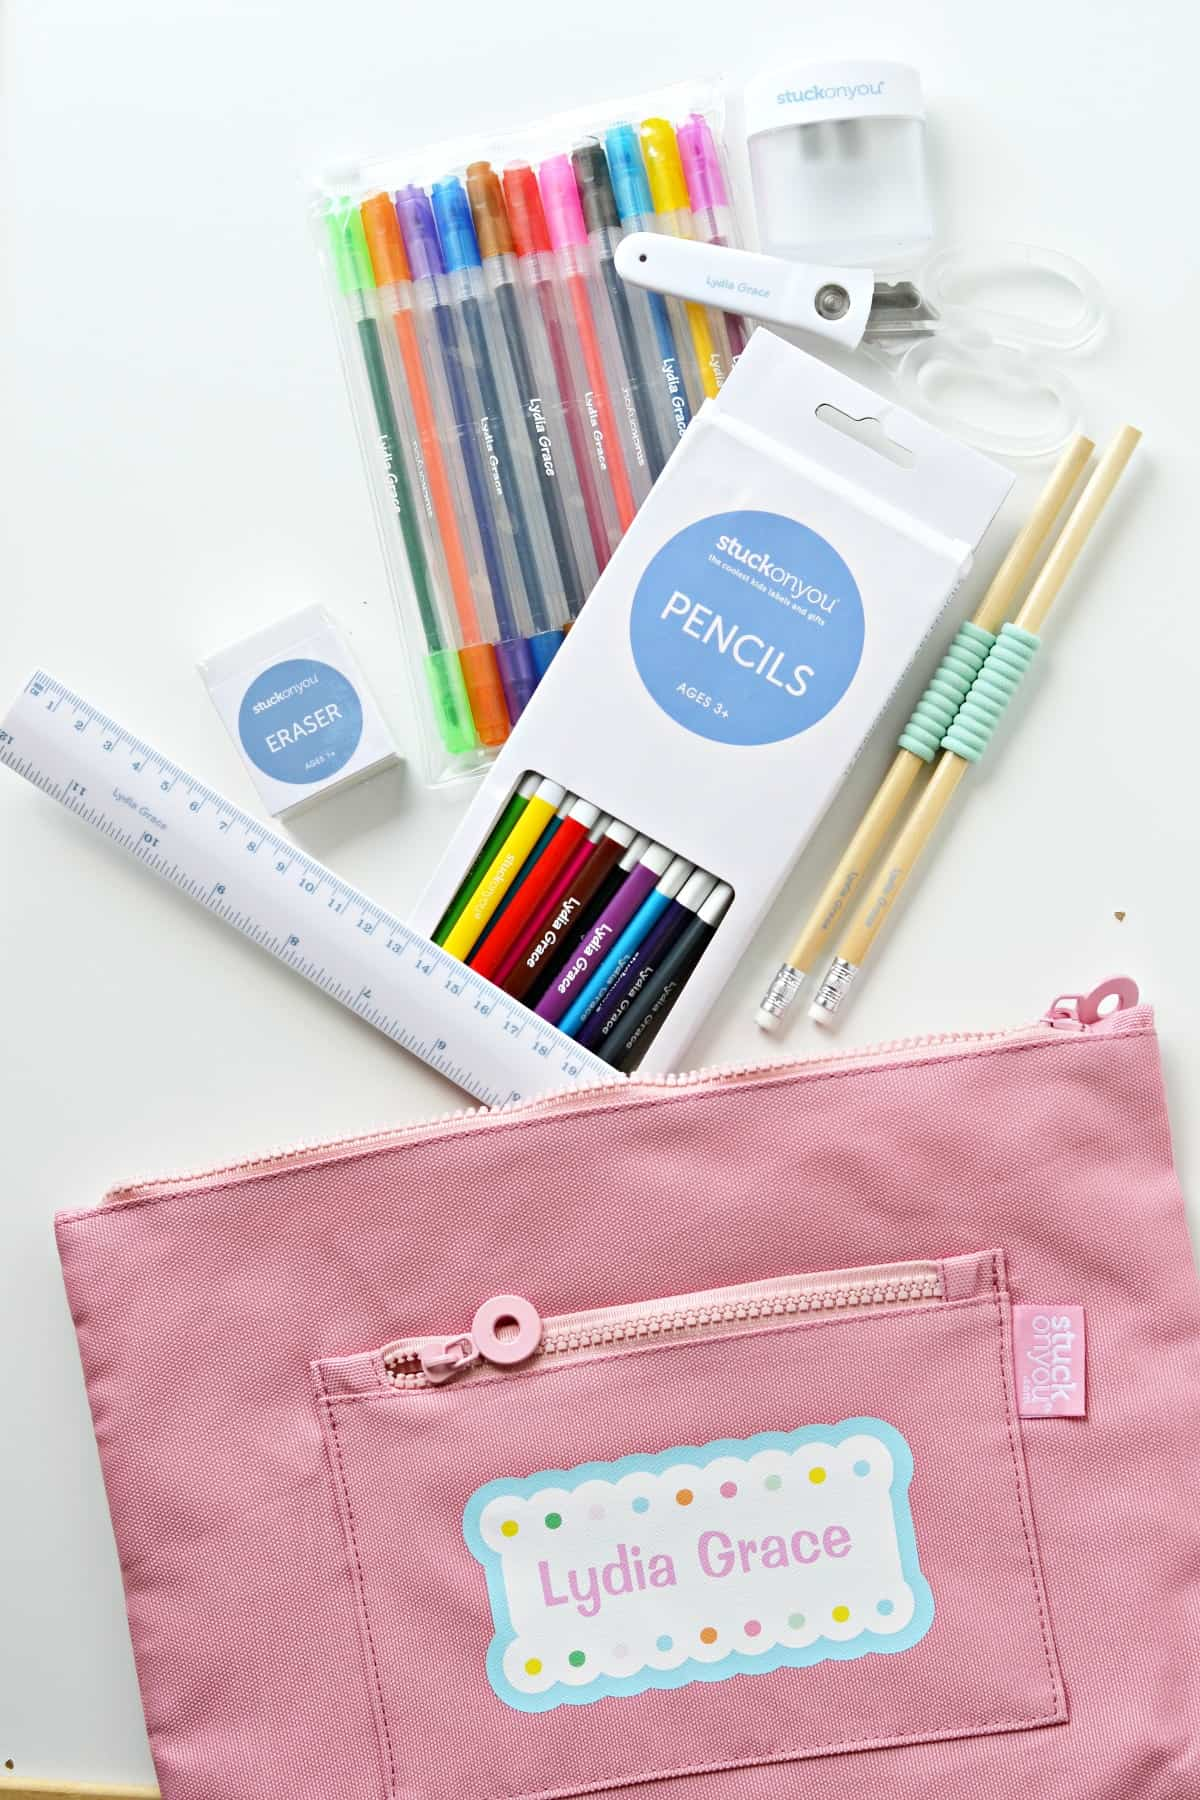 Personalized school supplies from Stuck on You